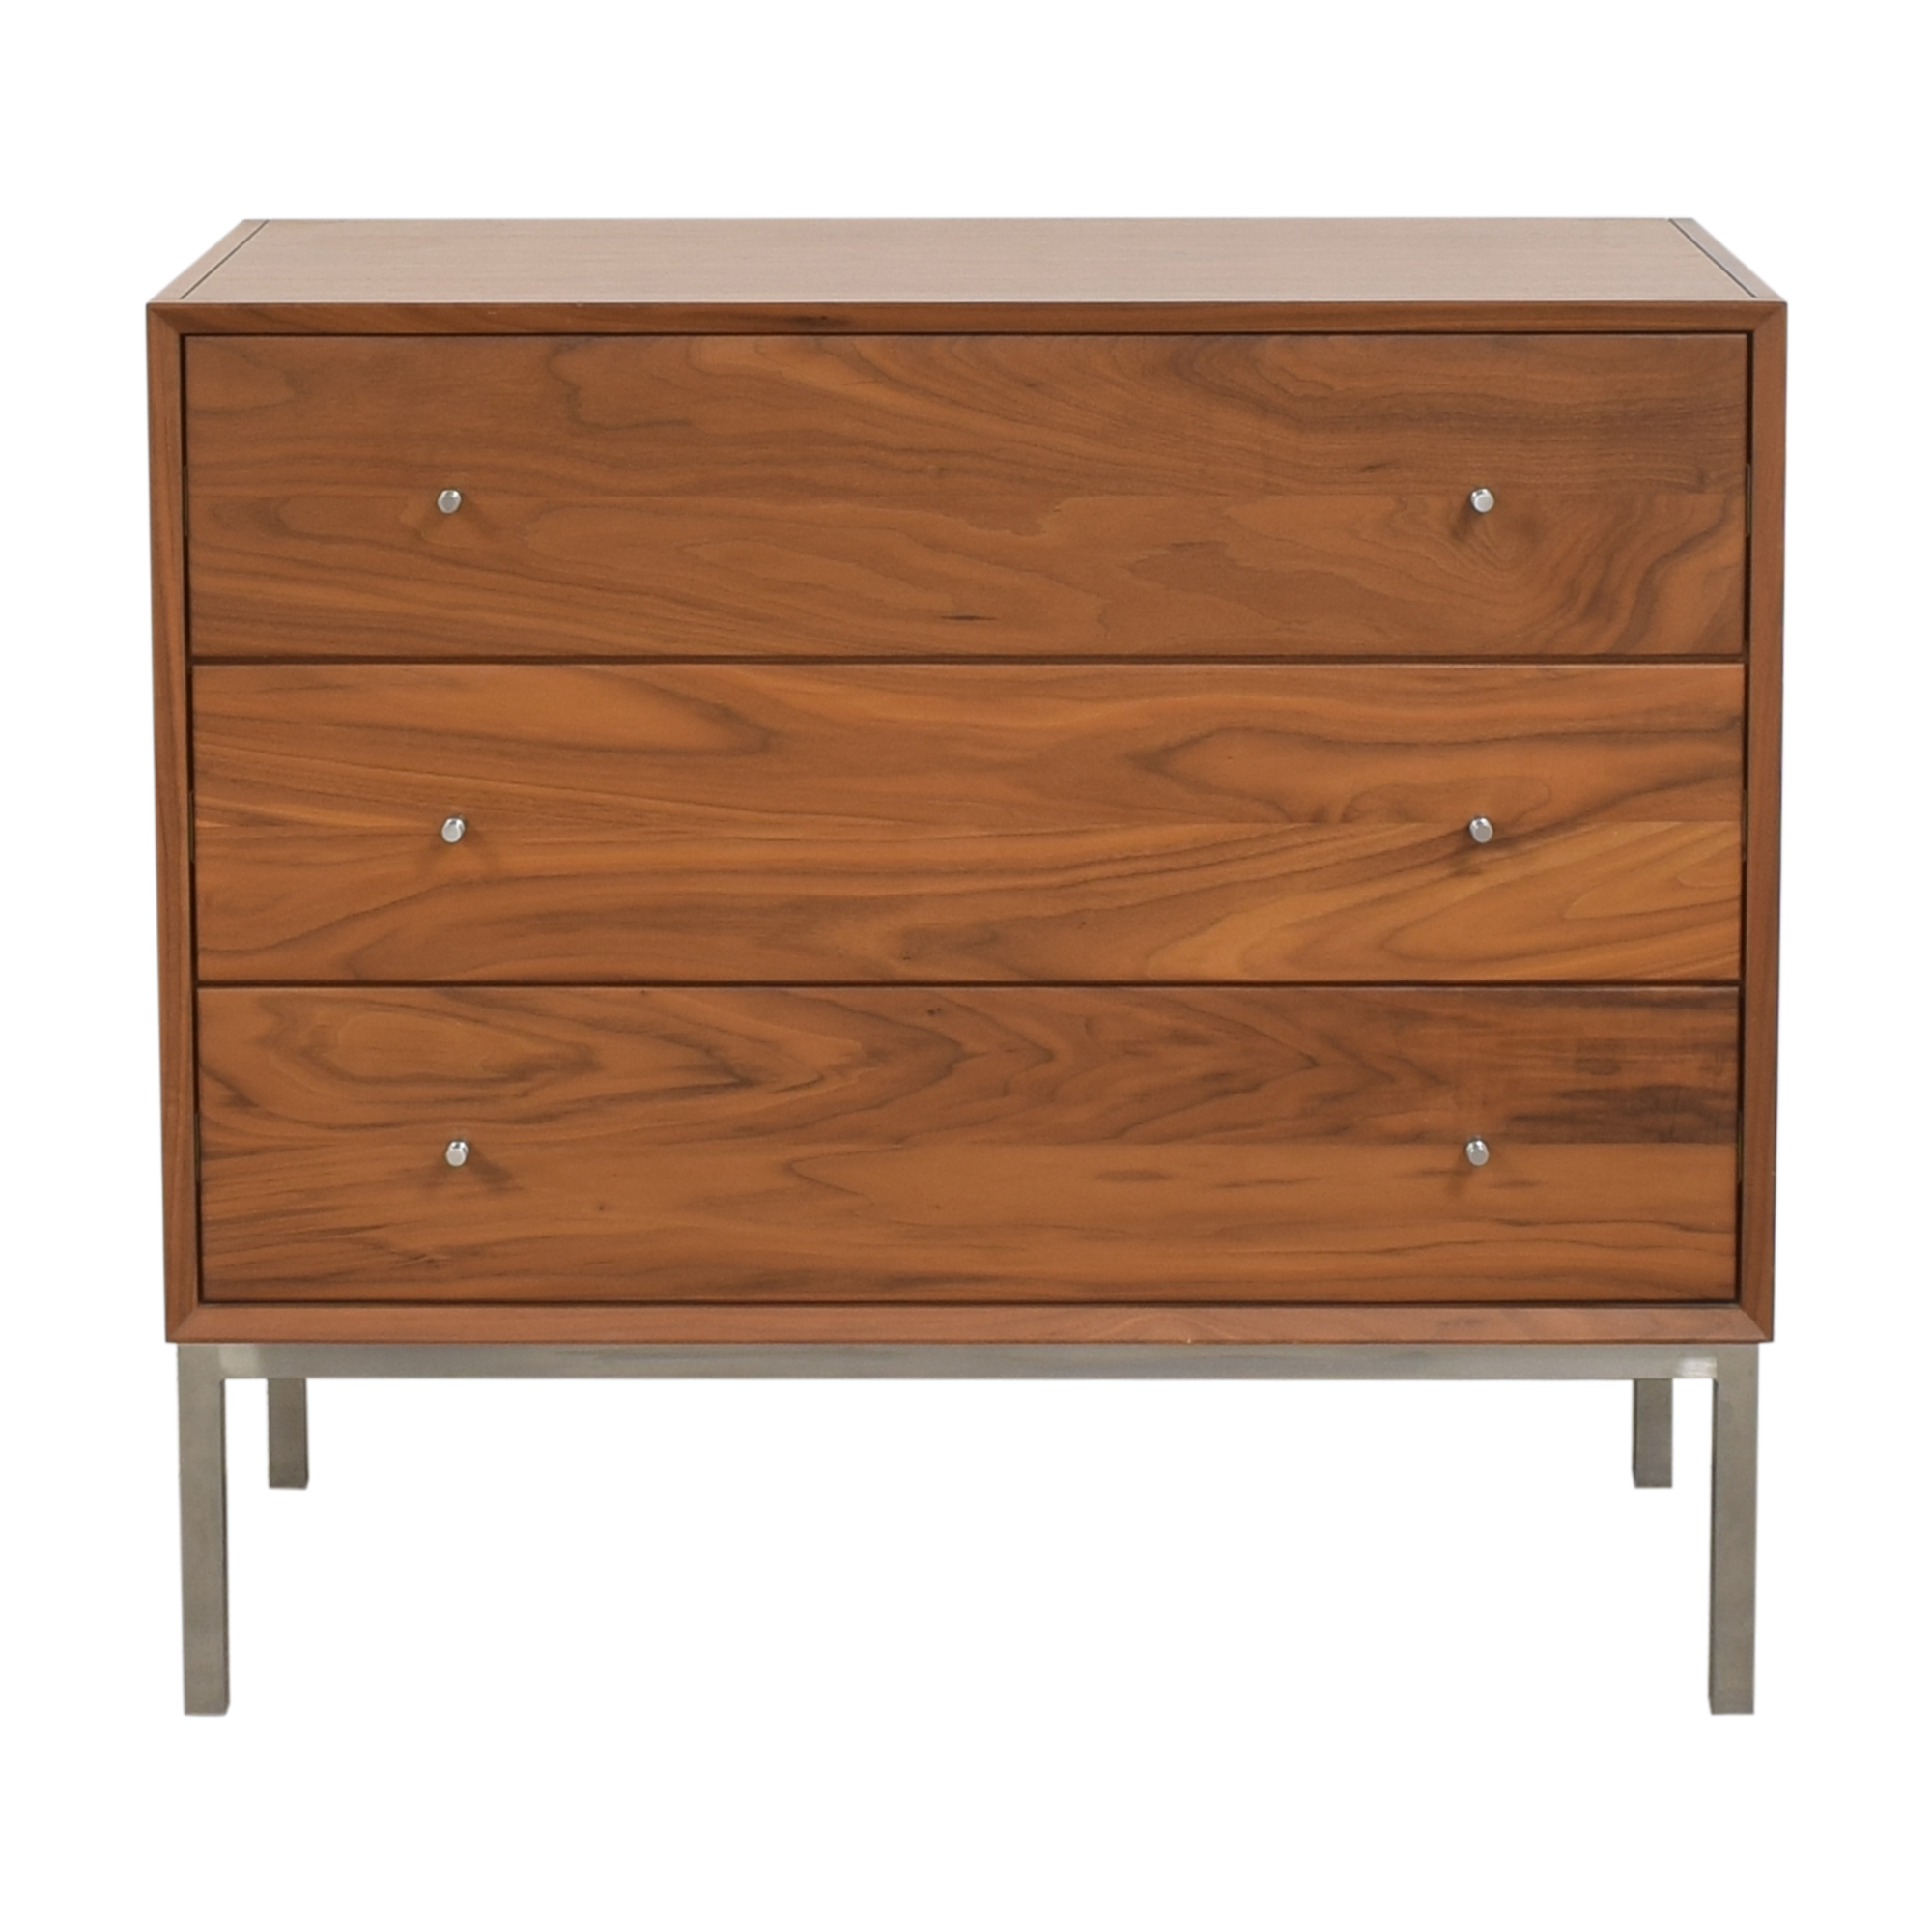 Room & Board Delano Three Drawer Dresser sale